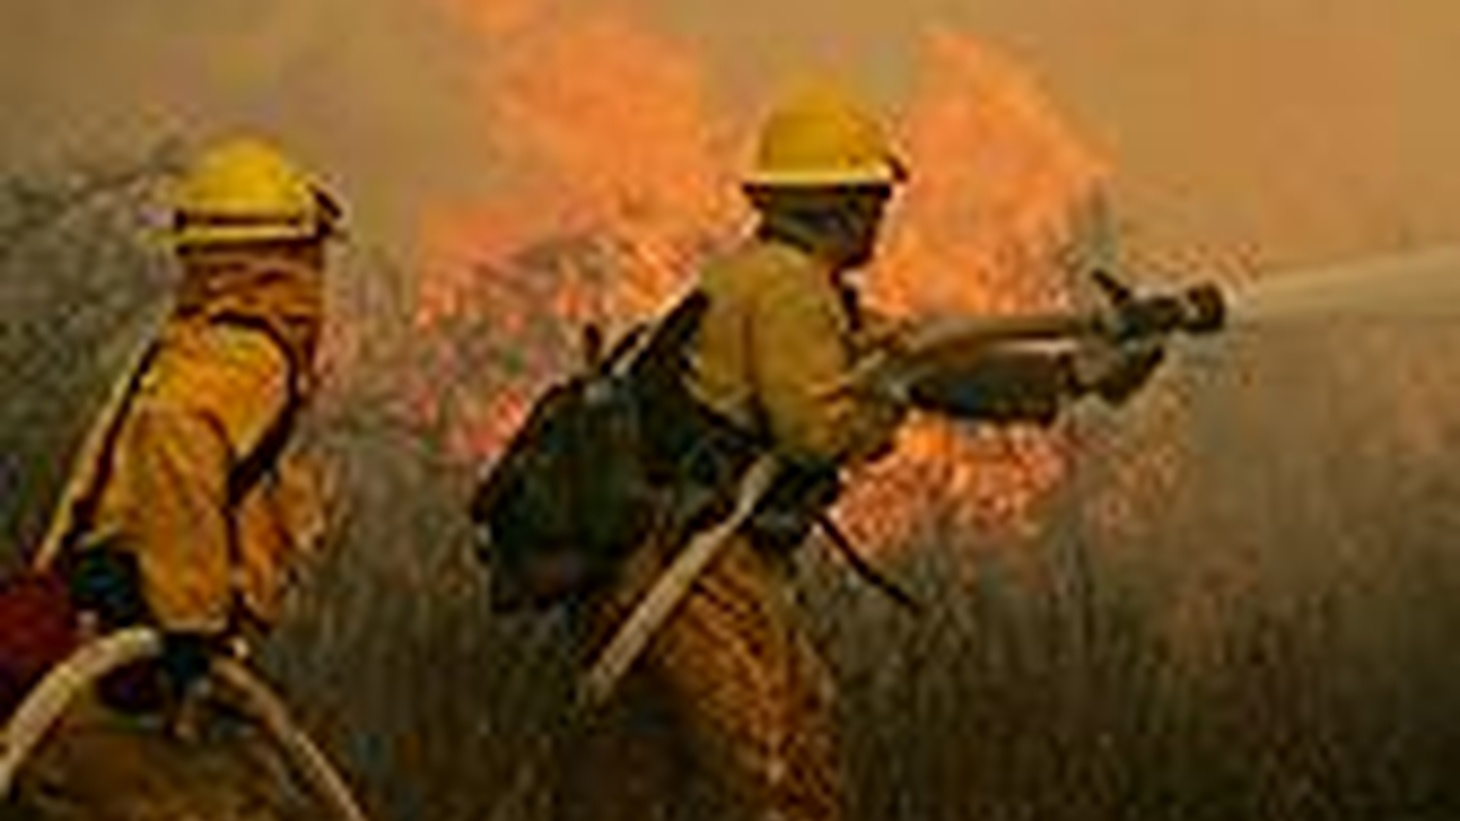 The latest skirmish in our losing war against wildfire looks –- thankfully -- to be winding down. In the fire zones, fear and adrenaline are giving way to the heavy